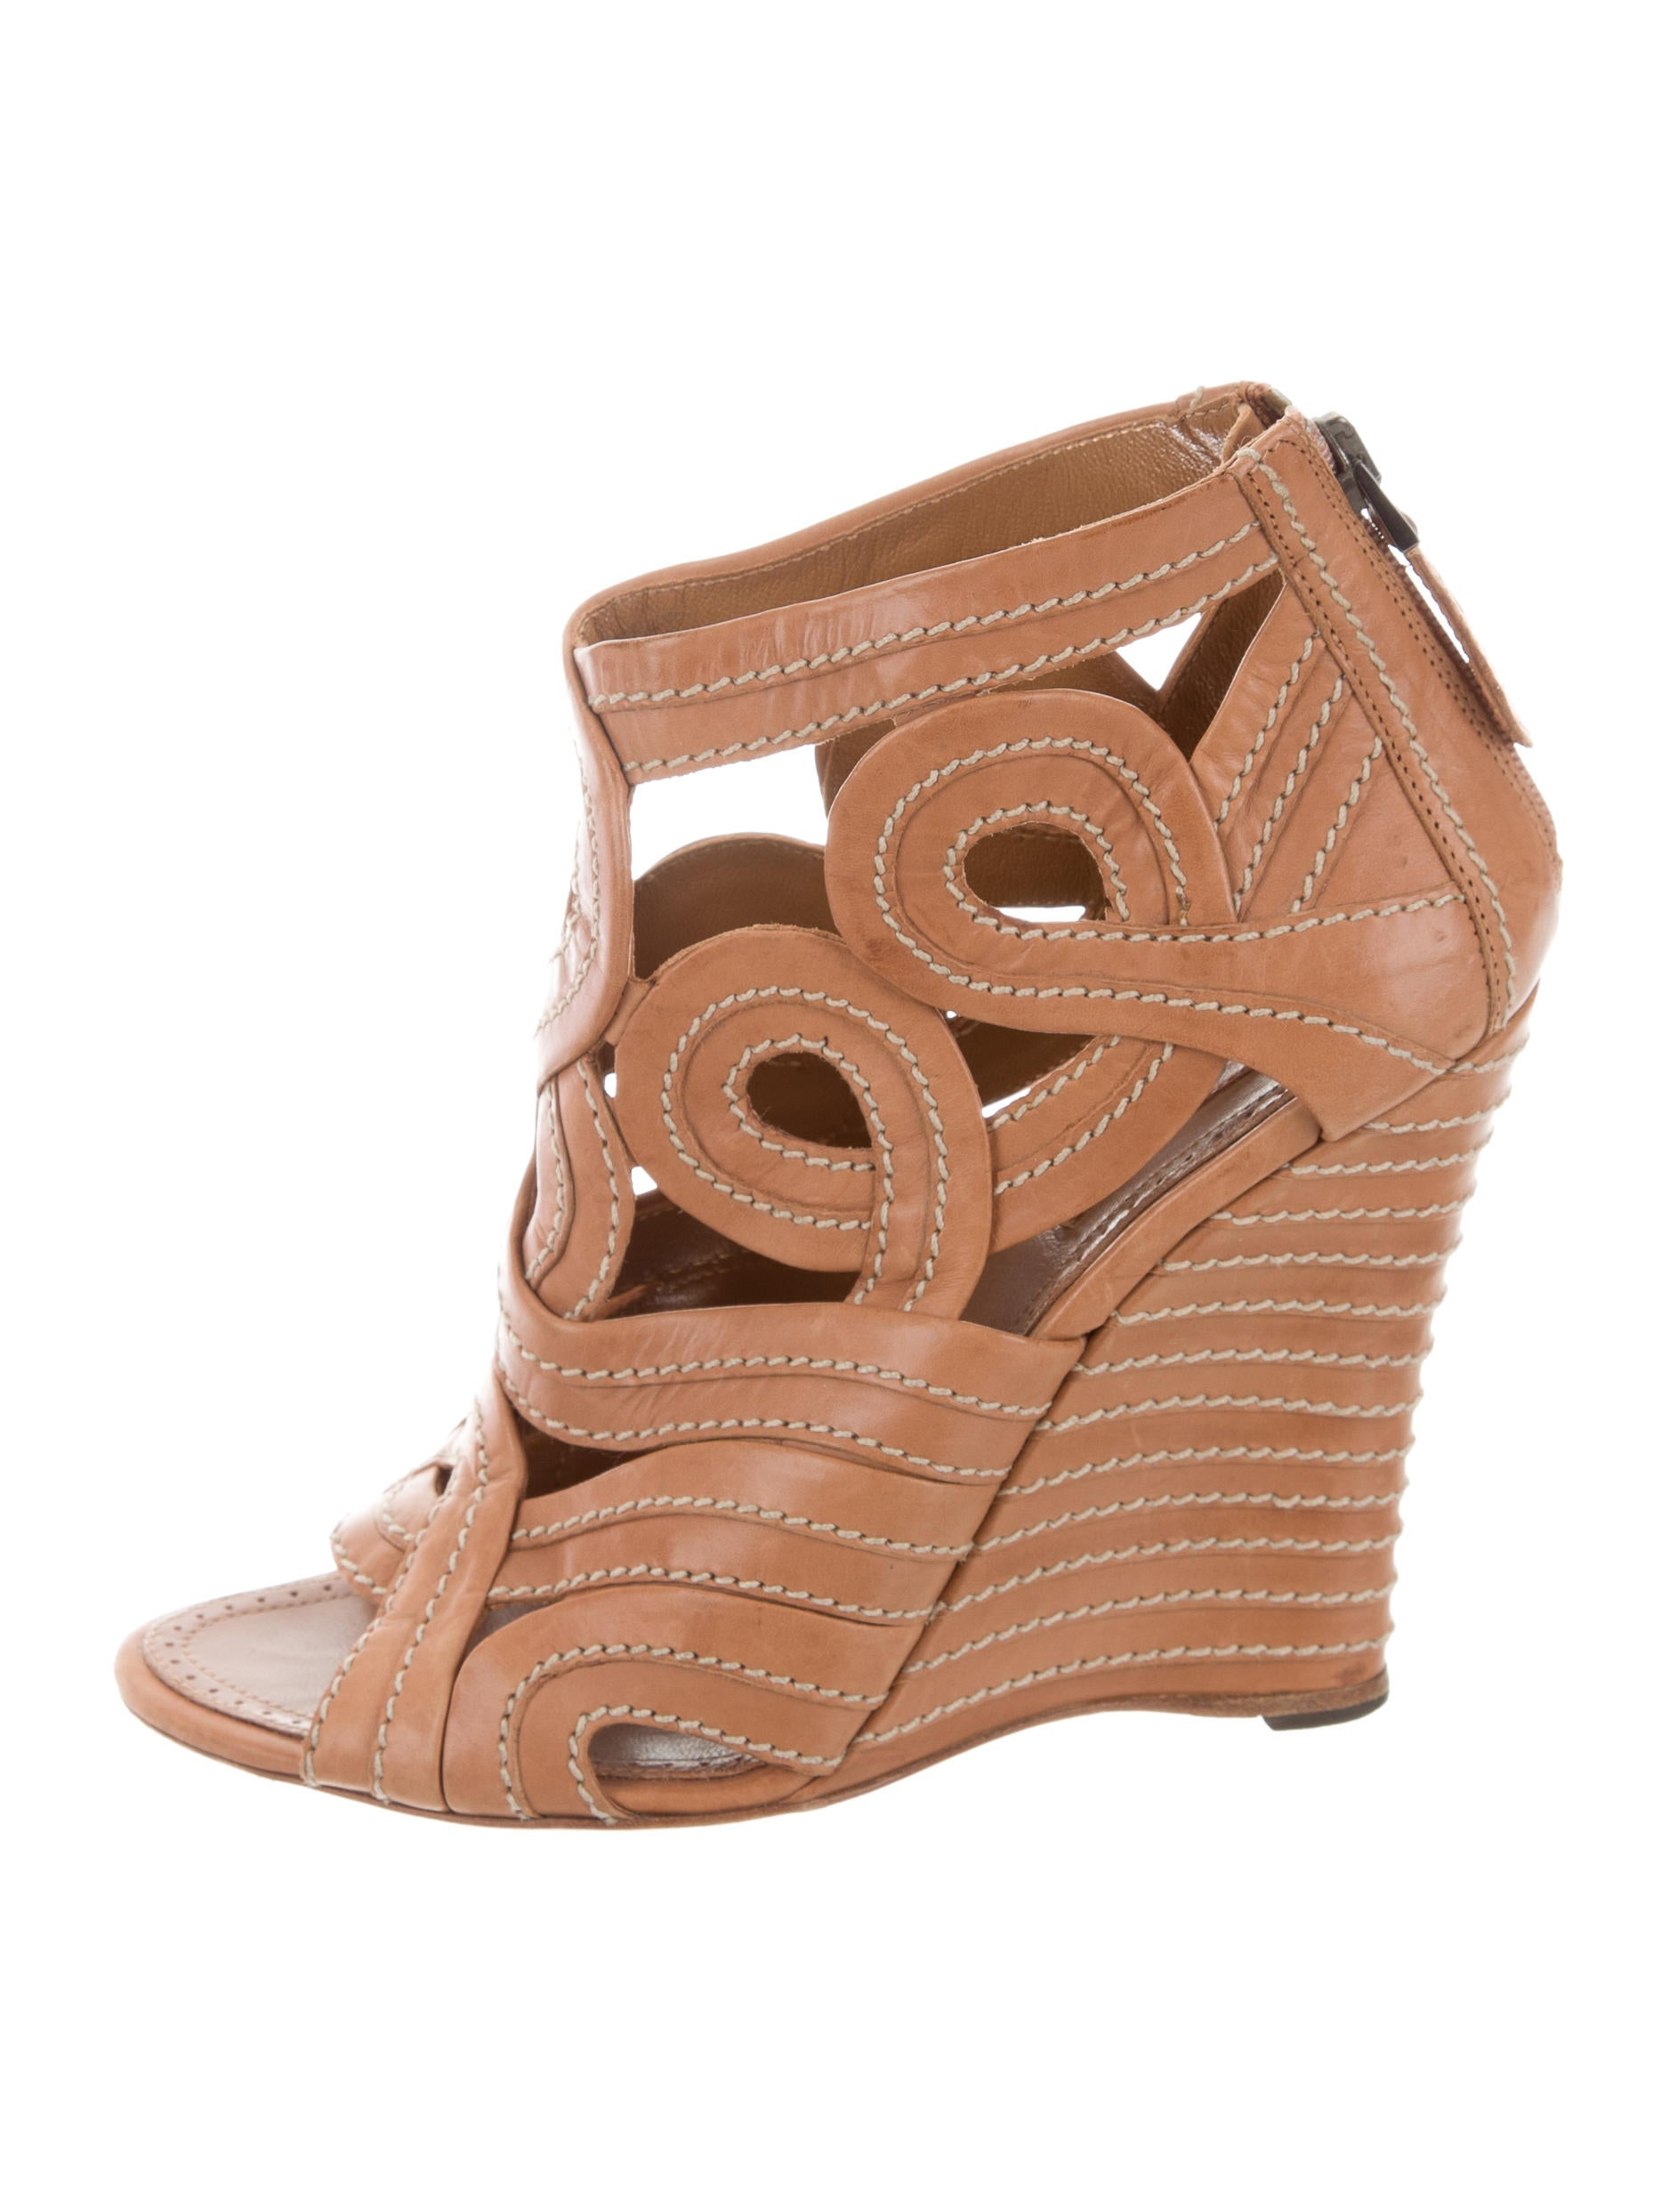 a80d1afcff3 Alaïa Leather Wedge Sandals - Shoes - AL234009